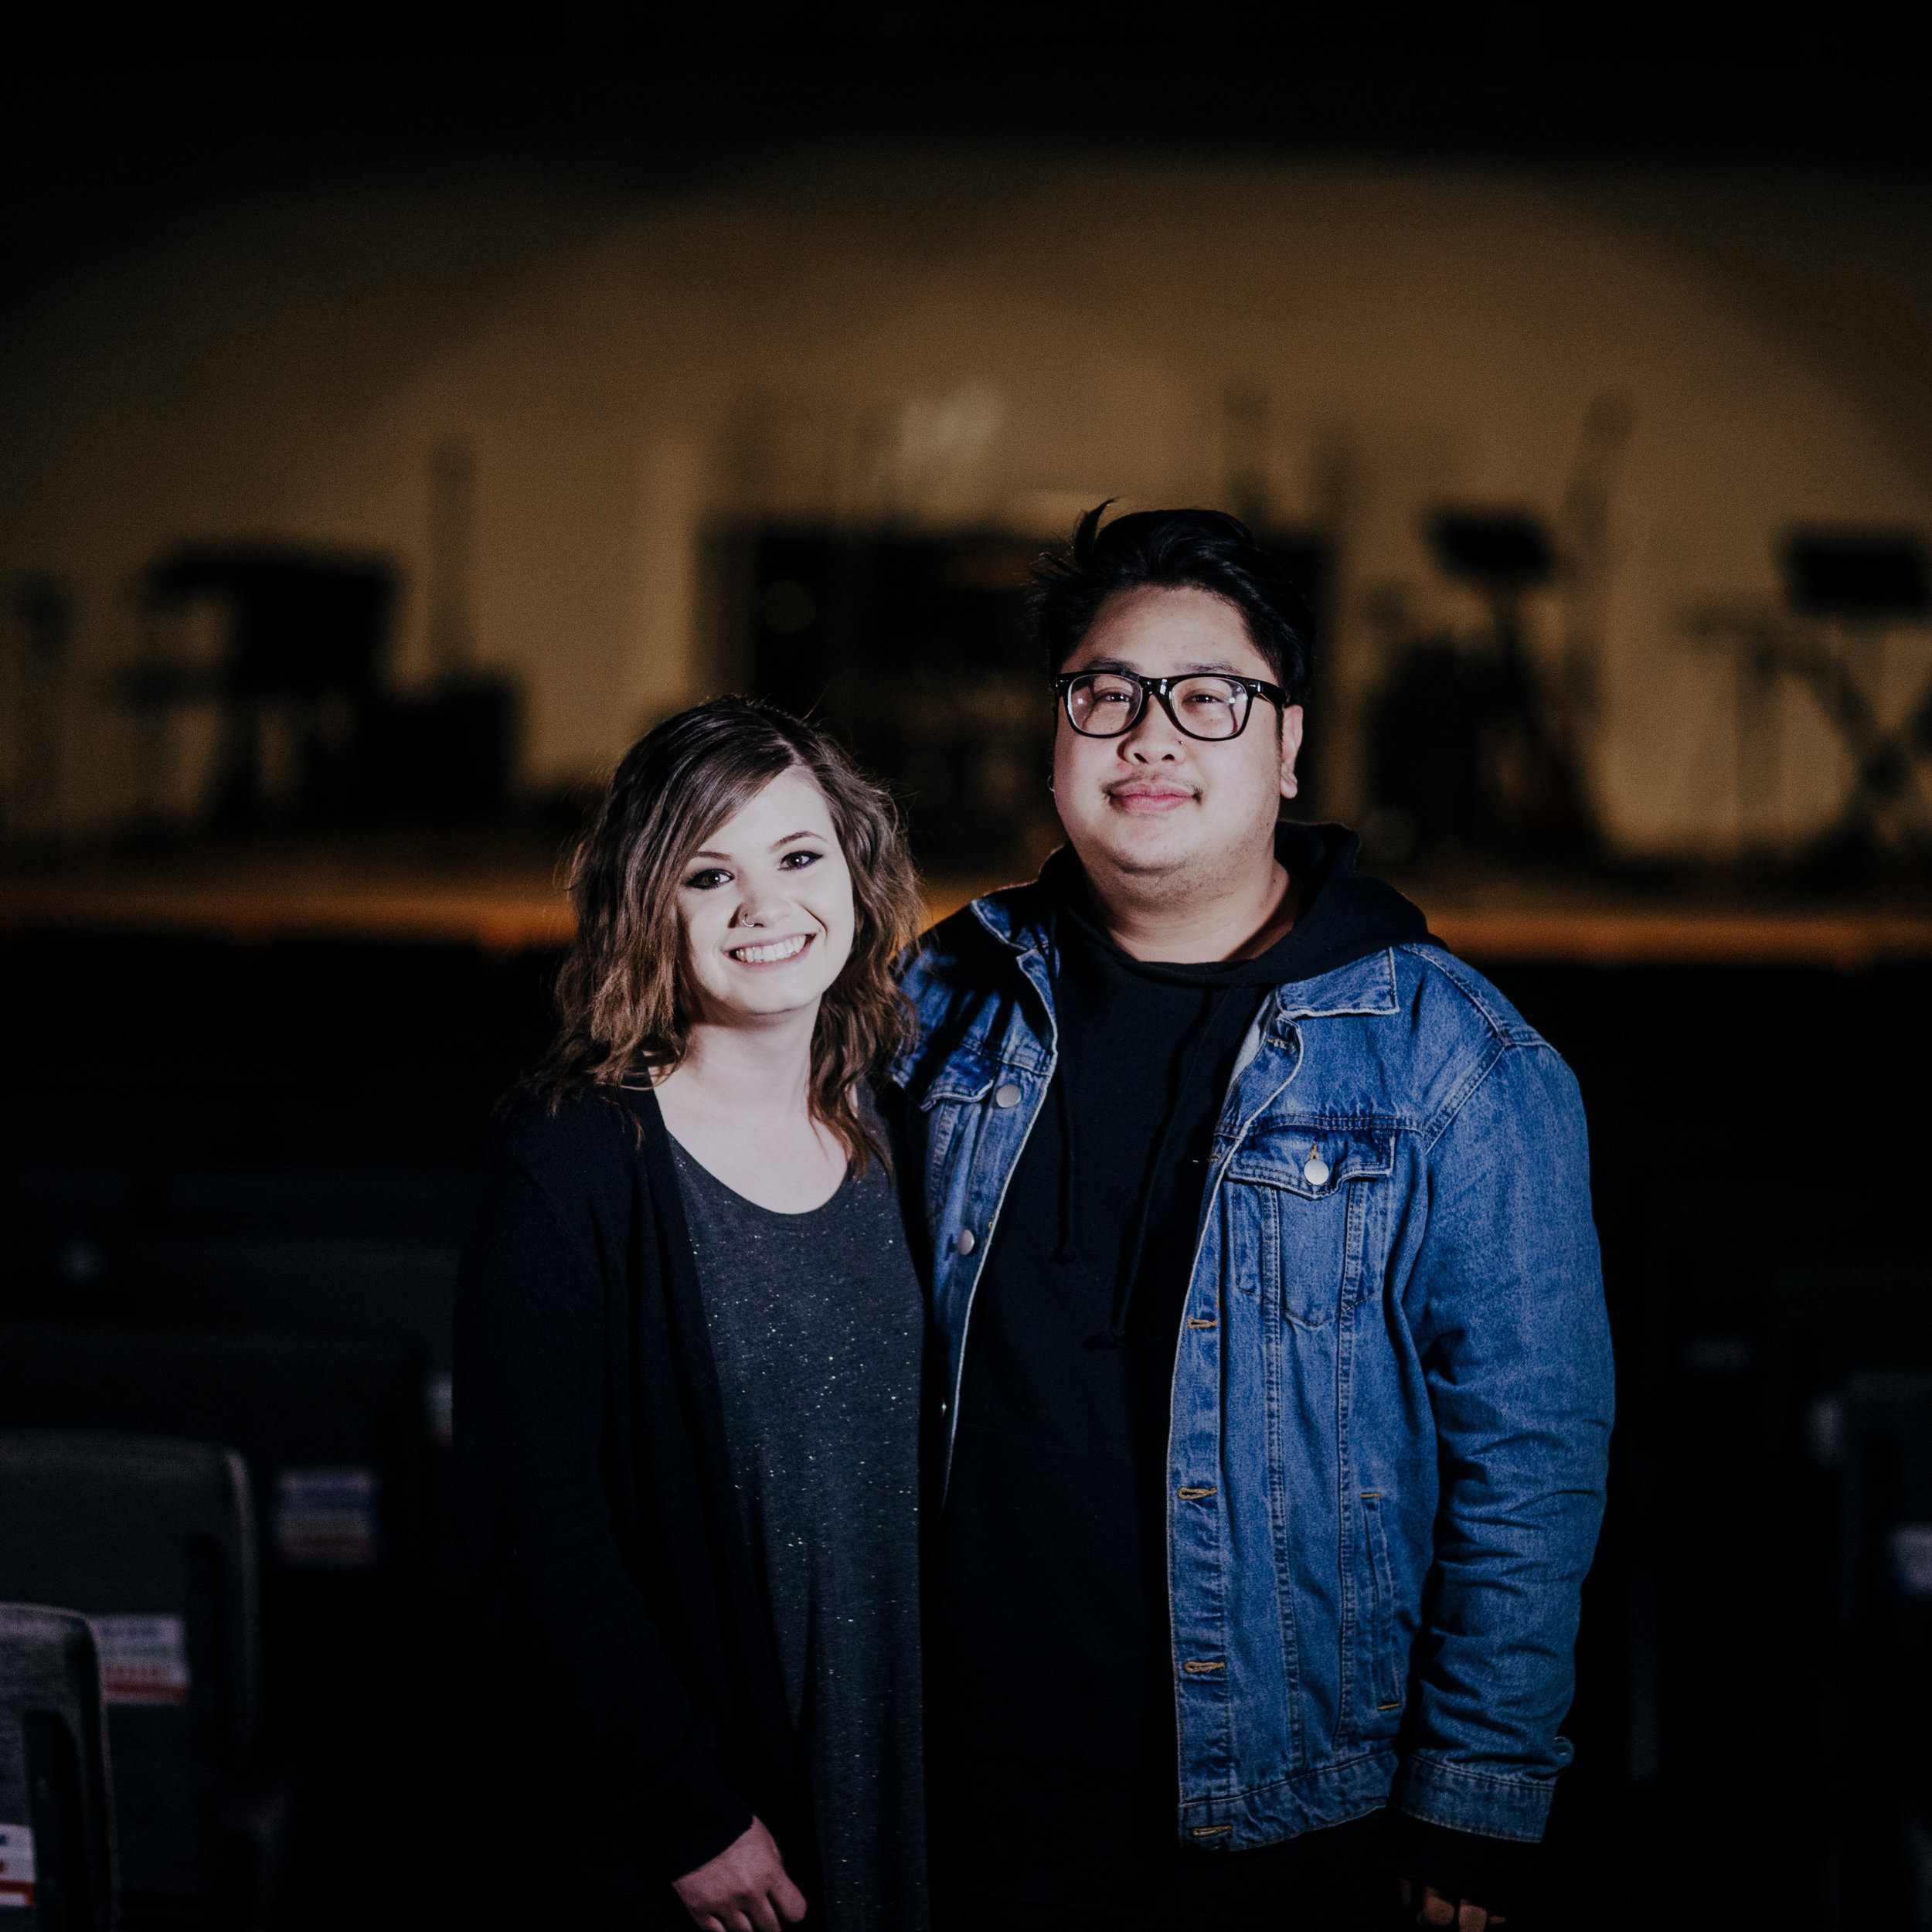 Bryan and Natalie Gaceta - Creative and Art Directors